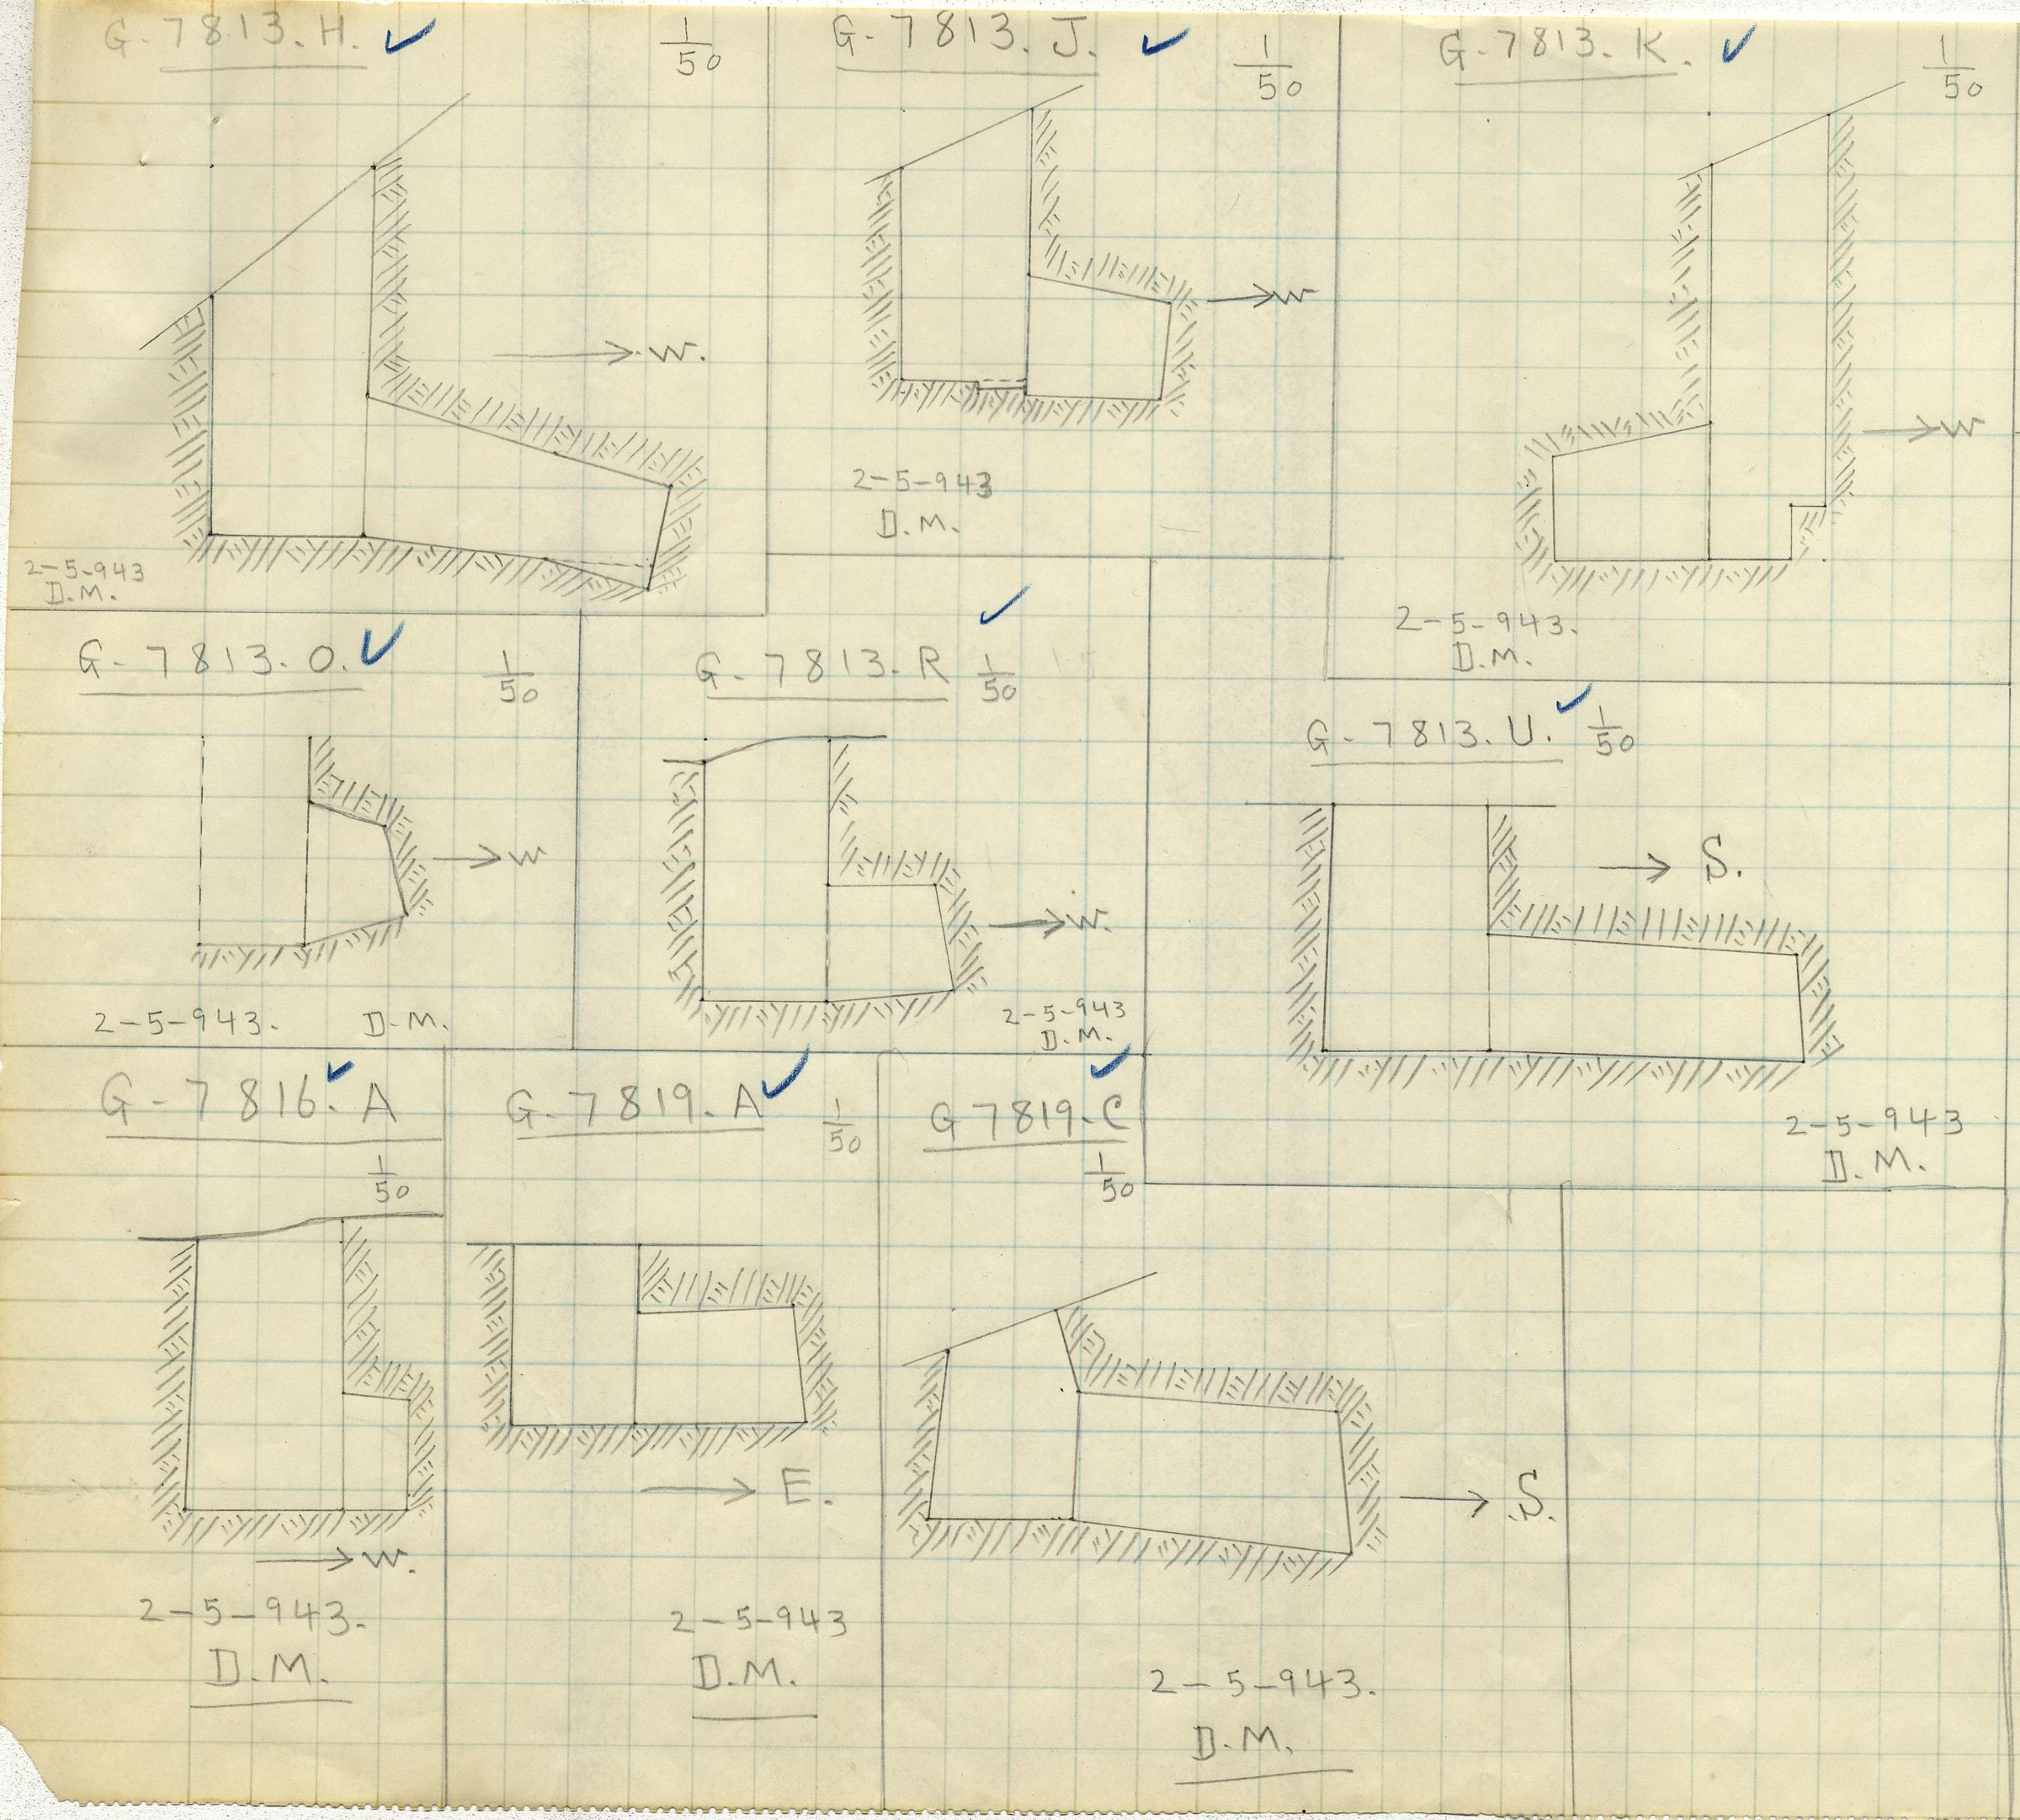 Maps and plans: G 7813, Shaft H, J, K, O, R, U & G 7816, Shaft A & G 7819, Shaft A and C